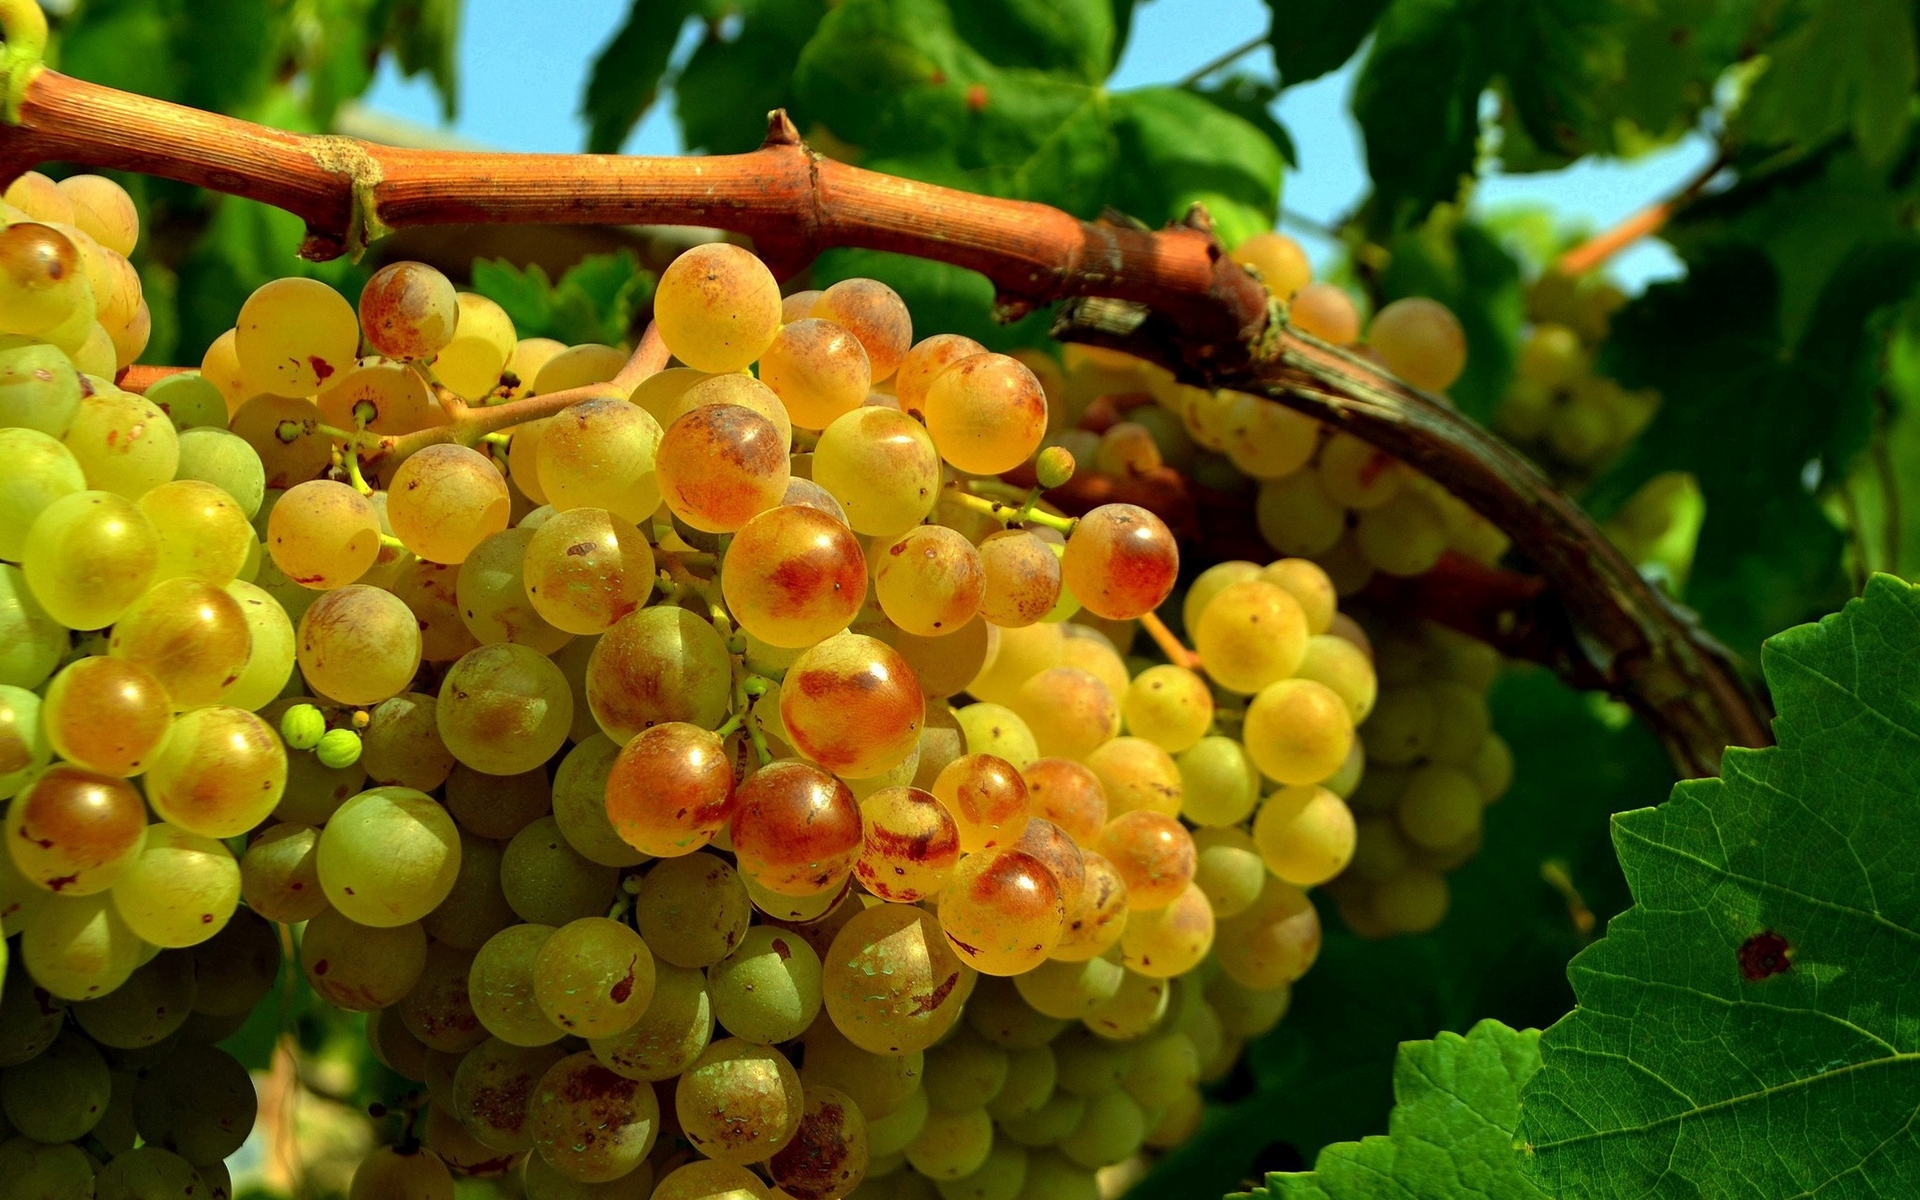 Grapes wallpaper 27975 1920x1200